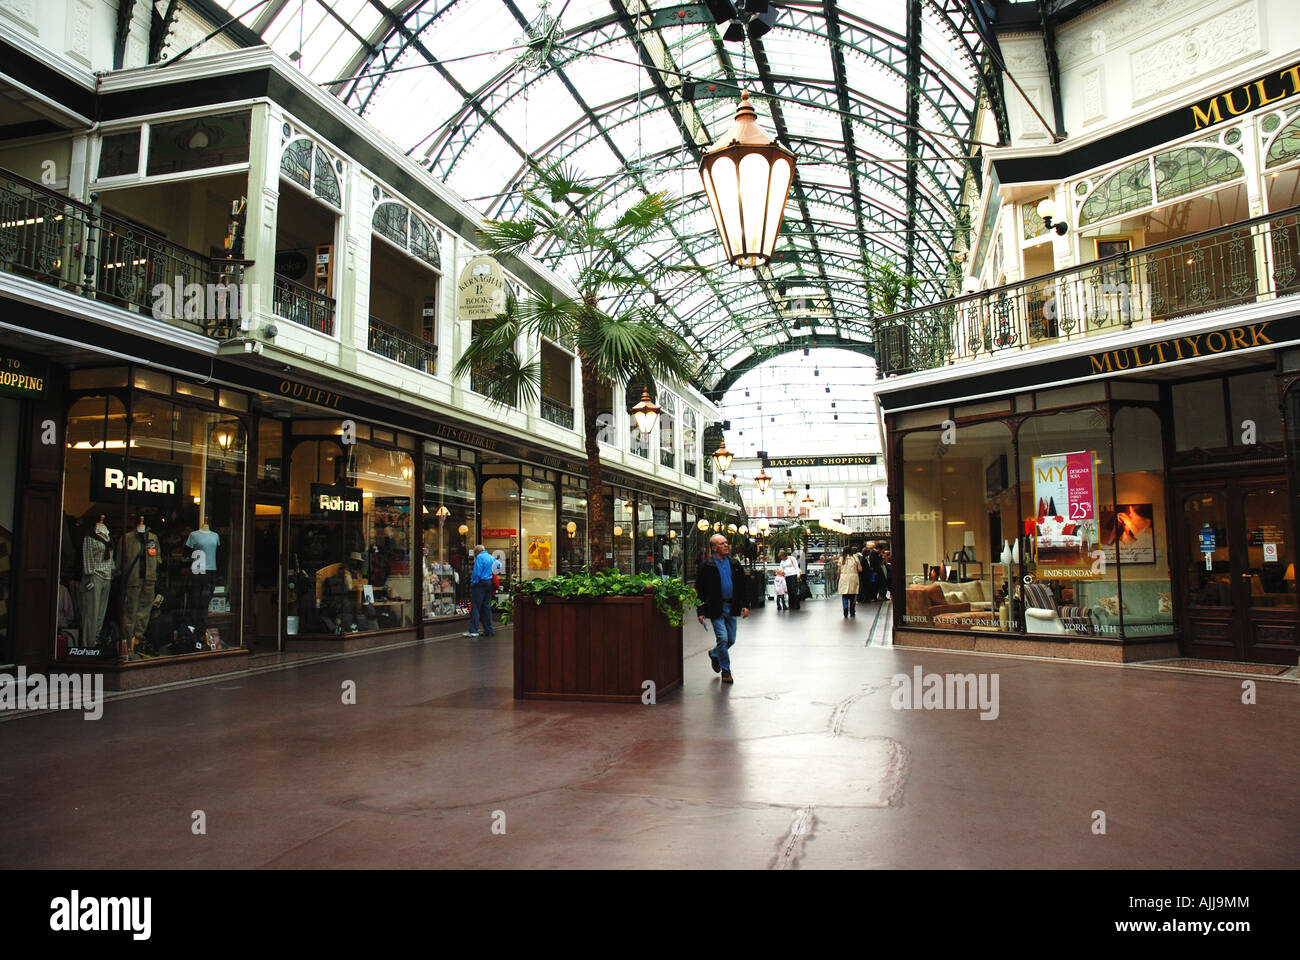 A view of Wayfarers Arcade in Southport, Merseyside. This is a very popular shopping venue in this gentile resort. Stock Photo